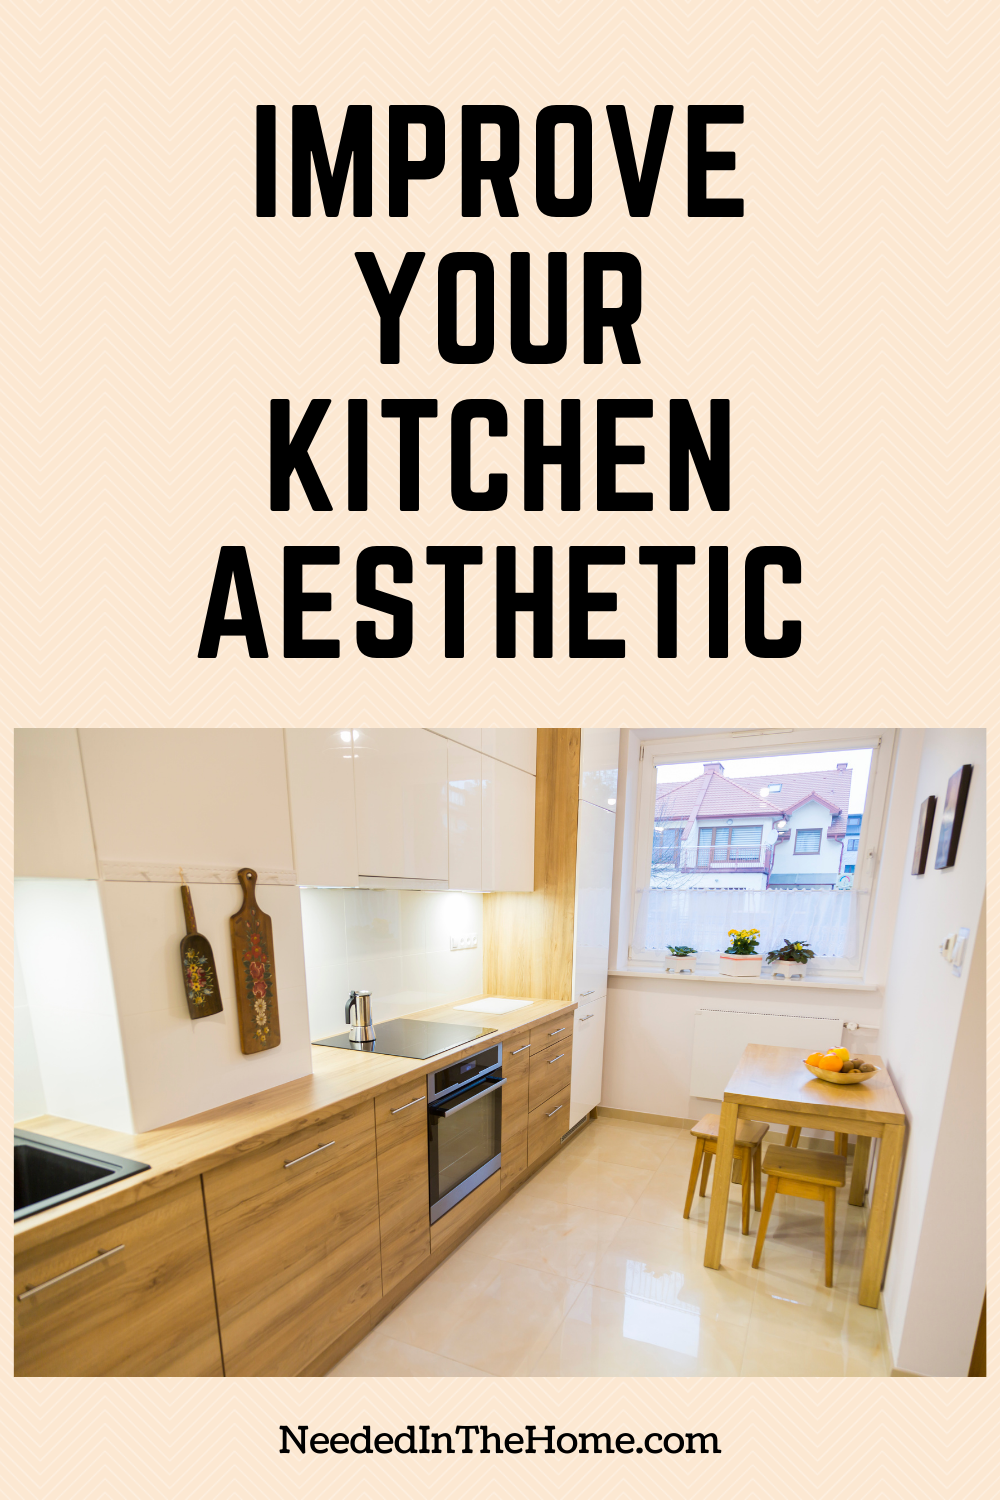 pinterest-pin-description improve your kitchen aesthetic small kitchen light colors neededinthehome